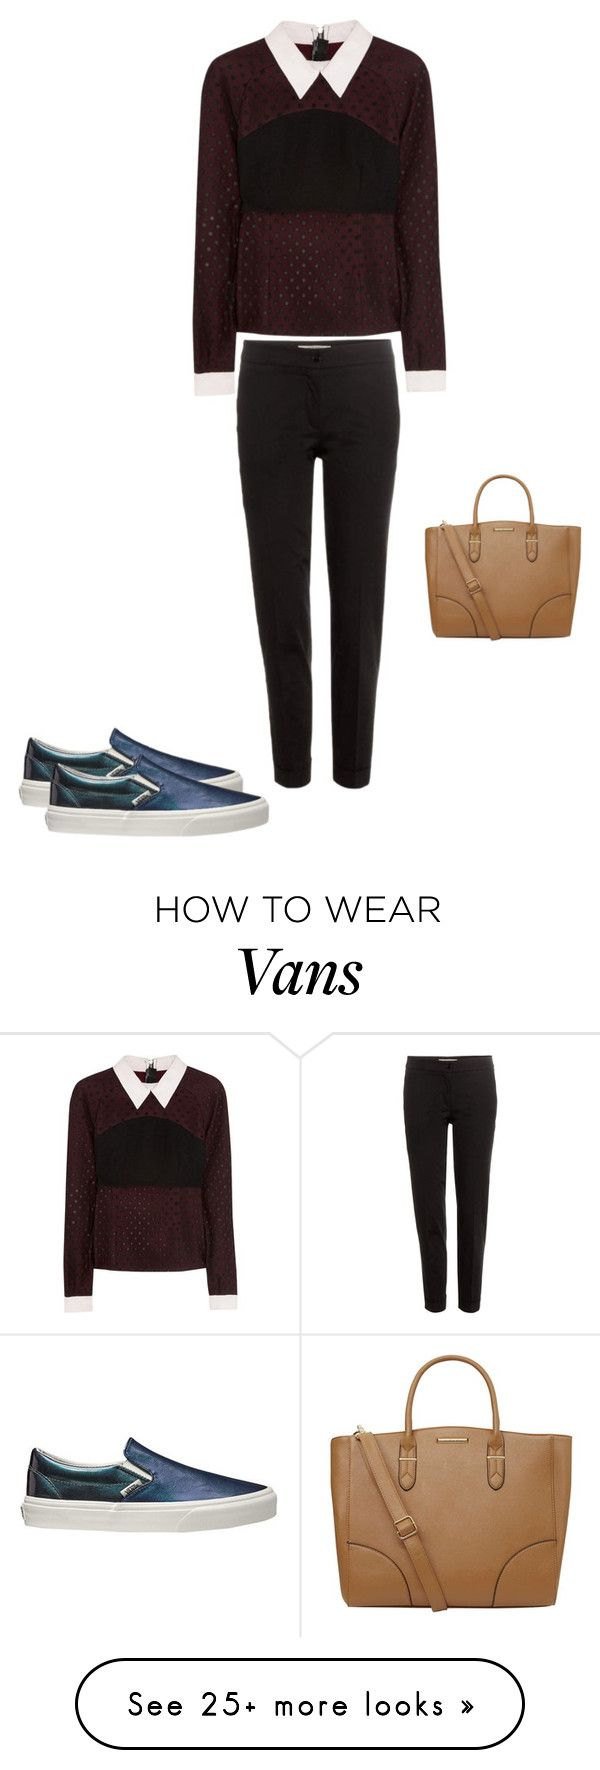 """Untitled #15256"" by explorer-14576312872 on Polyvore featuring Vans, Erdem, Etro and Dorothy Perkins"